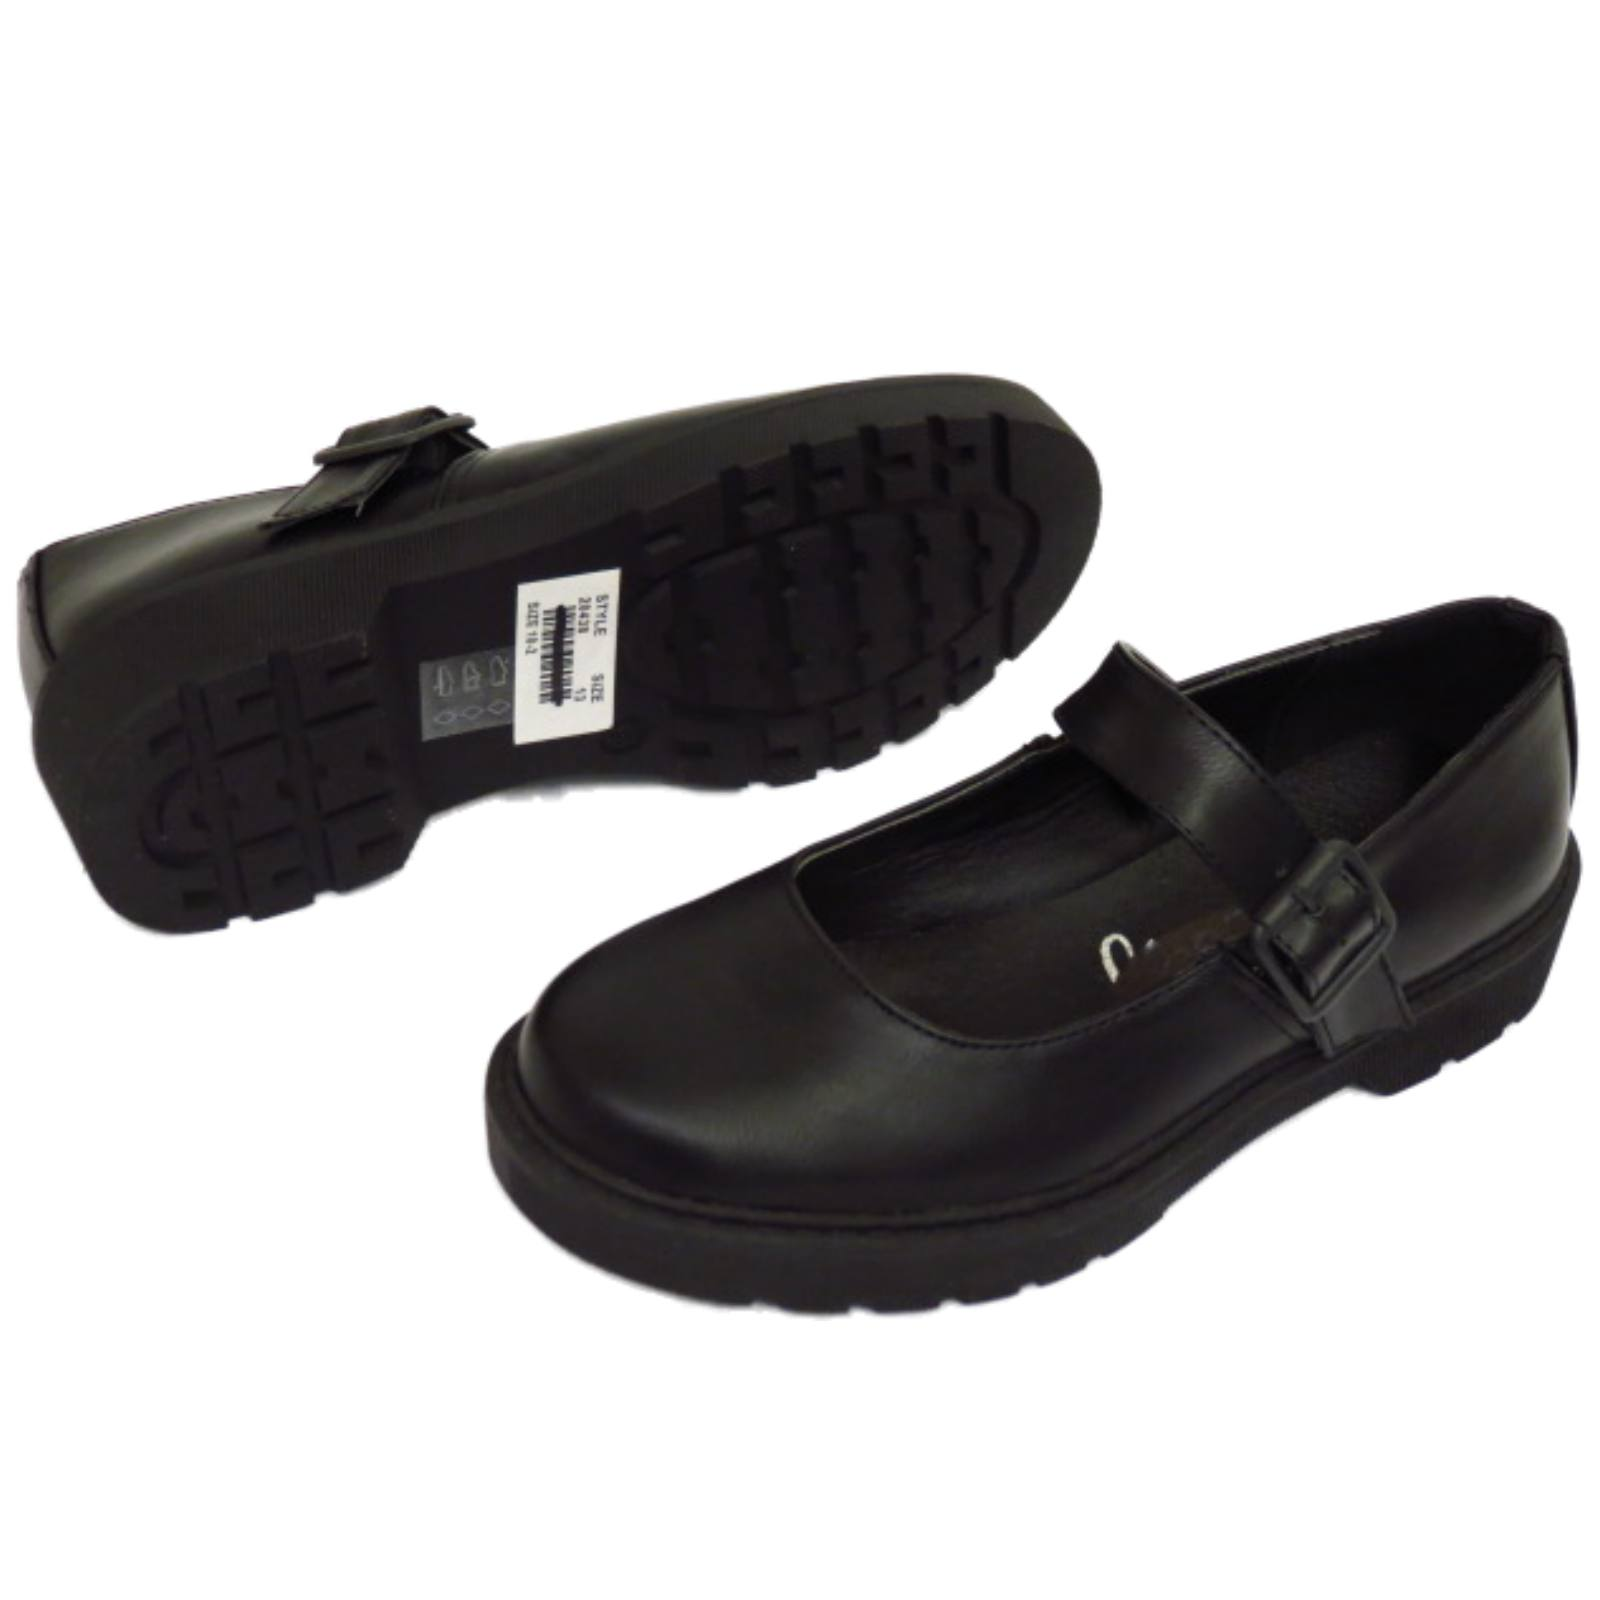 GIRLS-KIDS-CHILDRENS-BUCKLE-T-BAR-BLACK-SCHOOL-PUMPS-DOLLY-SMART-FLAT-SHOES-10-5 thumbnail 28